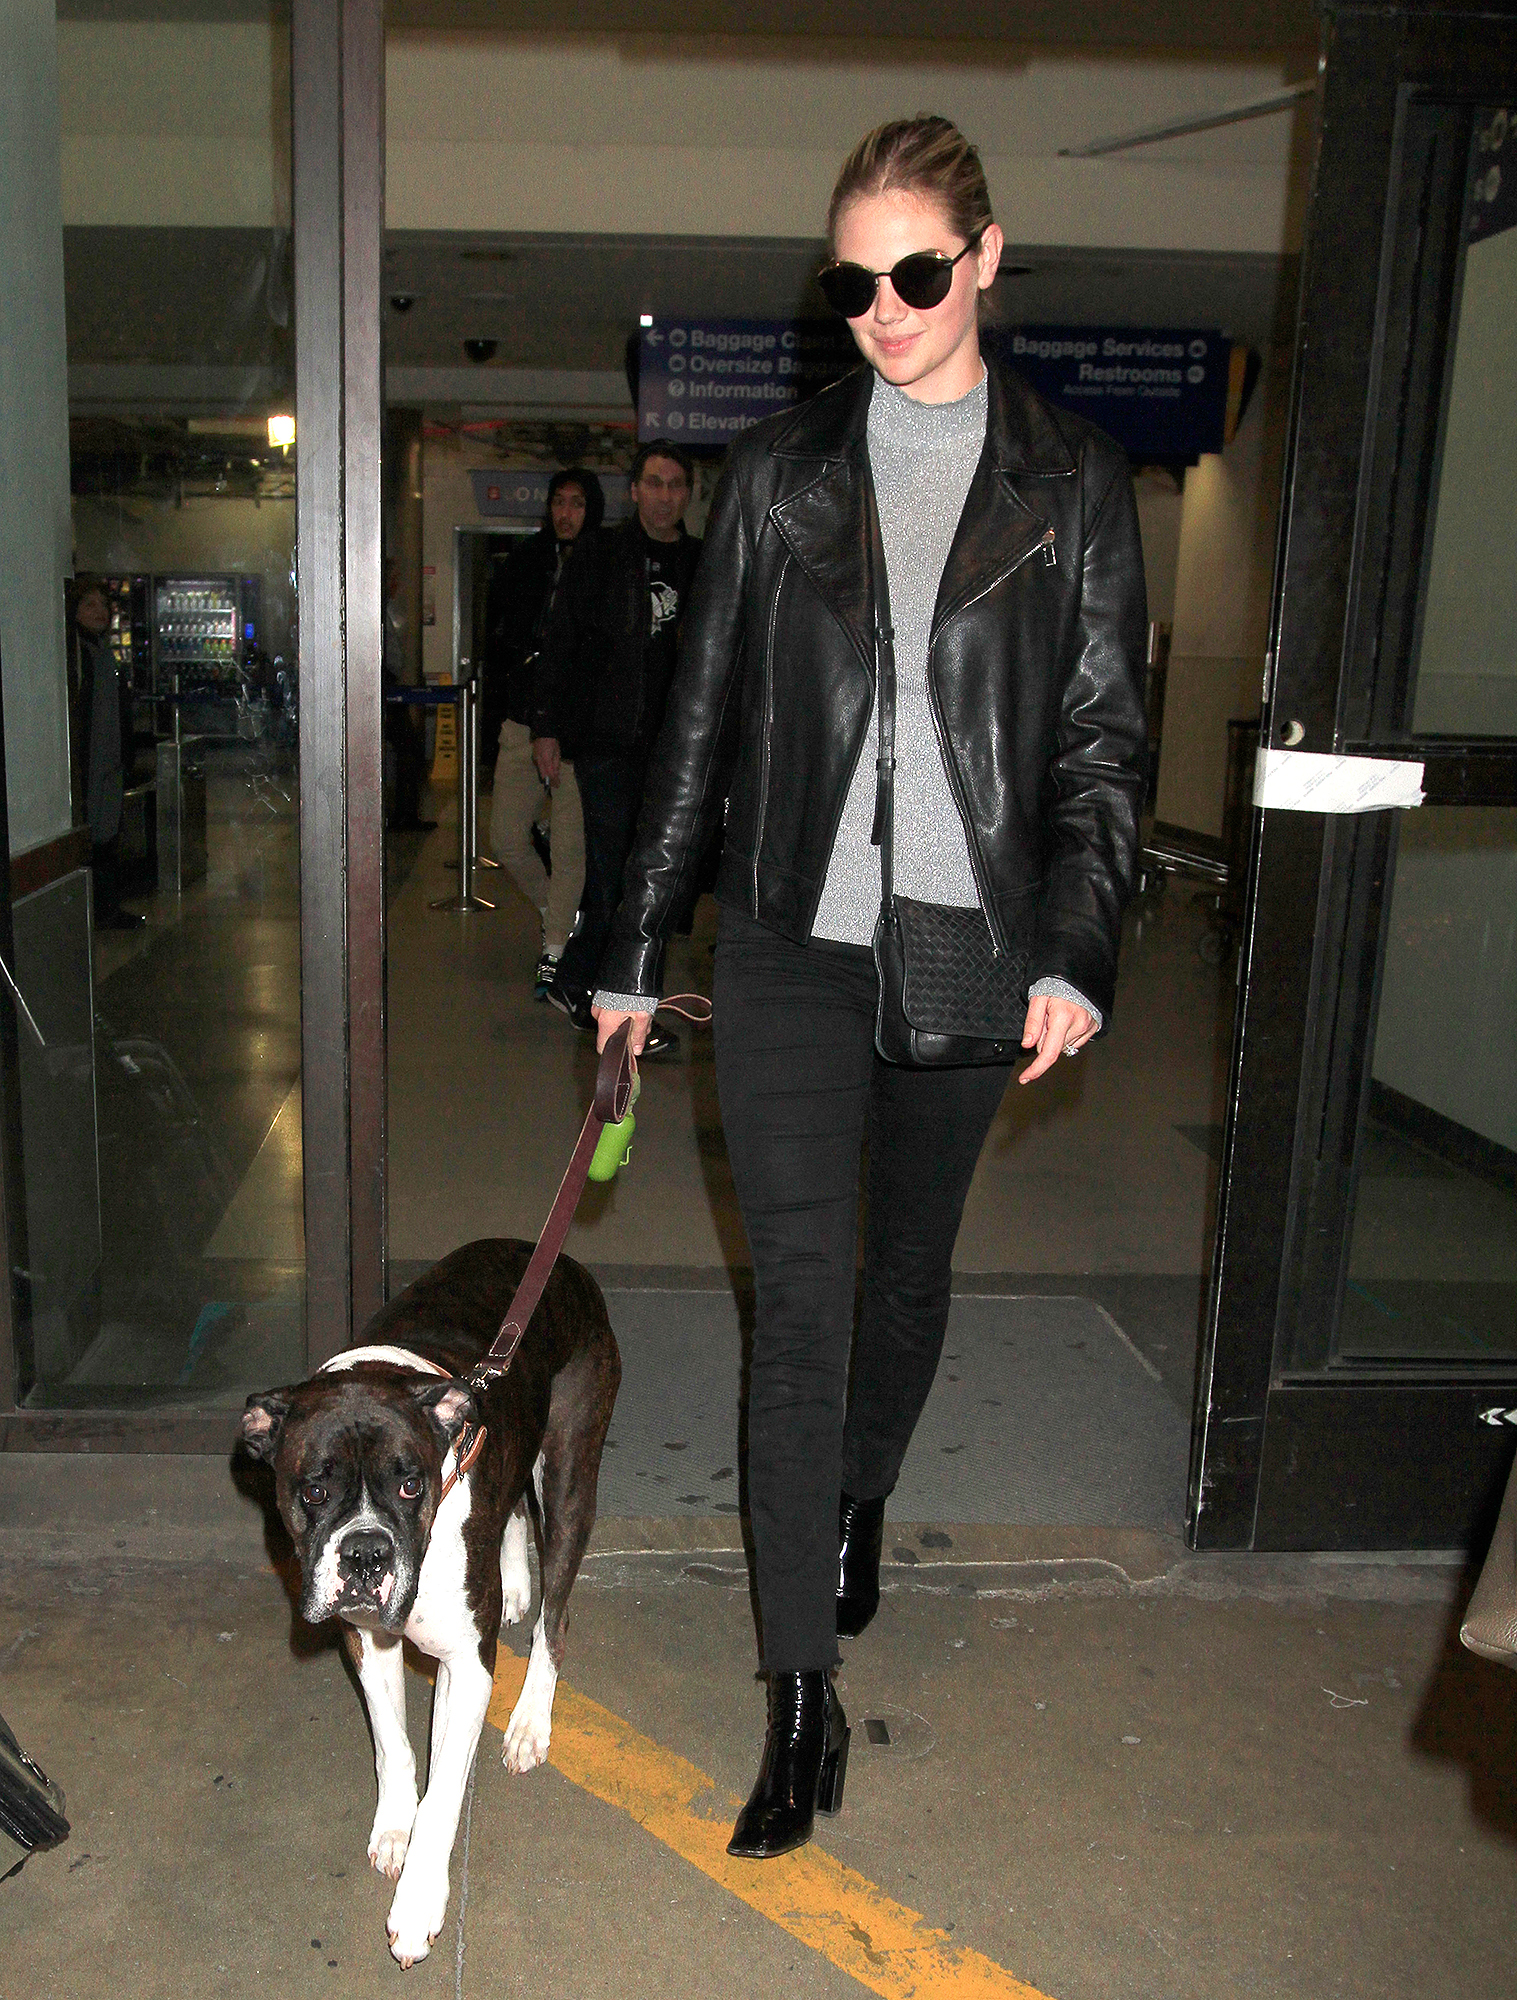 EXCLUSIVE: Kate Upton looks stunning with her dog, Harley as they arrive in Los Angeles.  The supermodel was seen at LAX with black pants and boots with a black leather jacket and sunglasses.